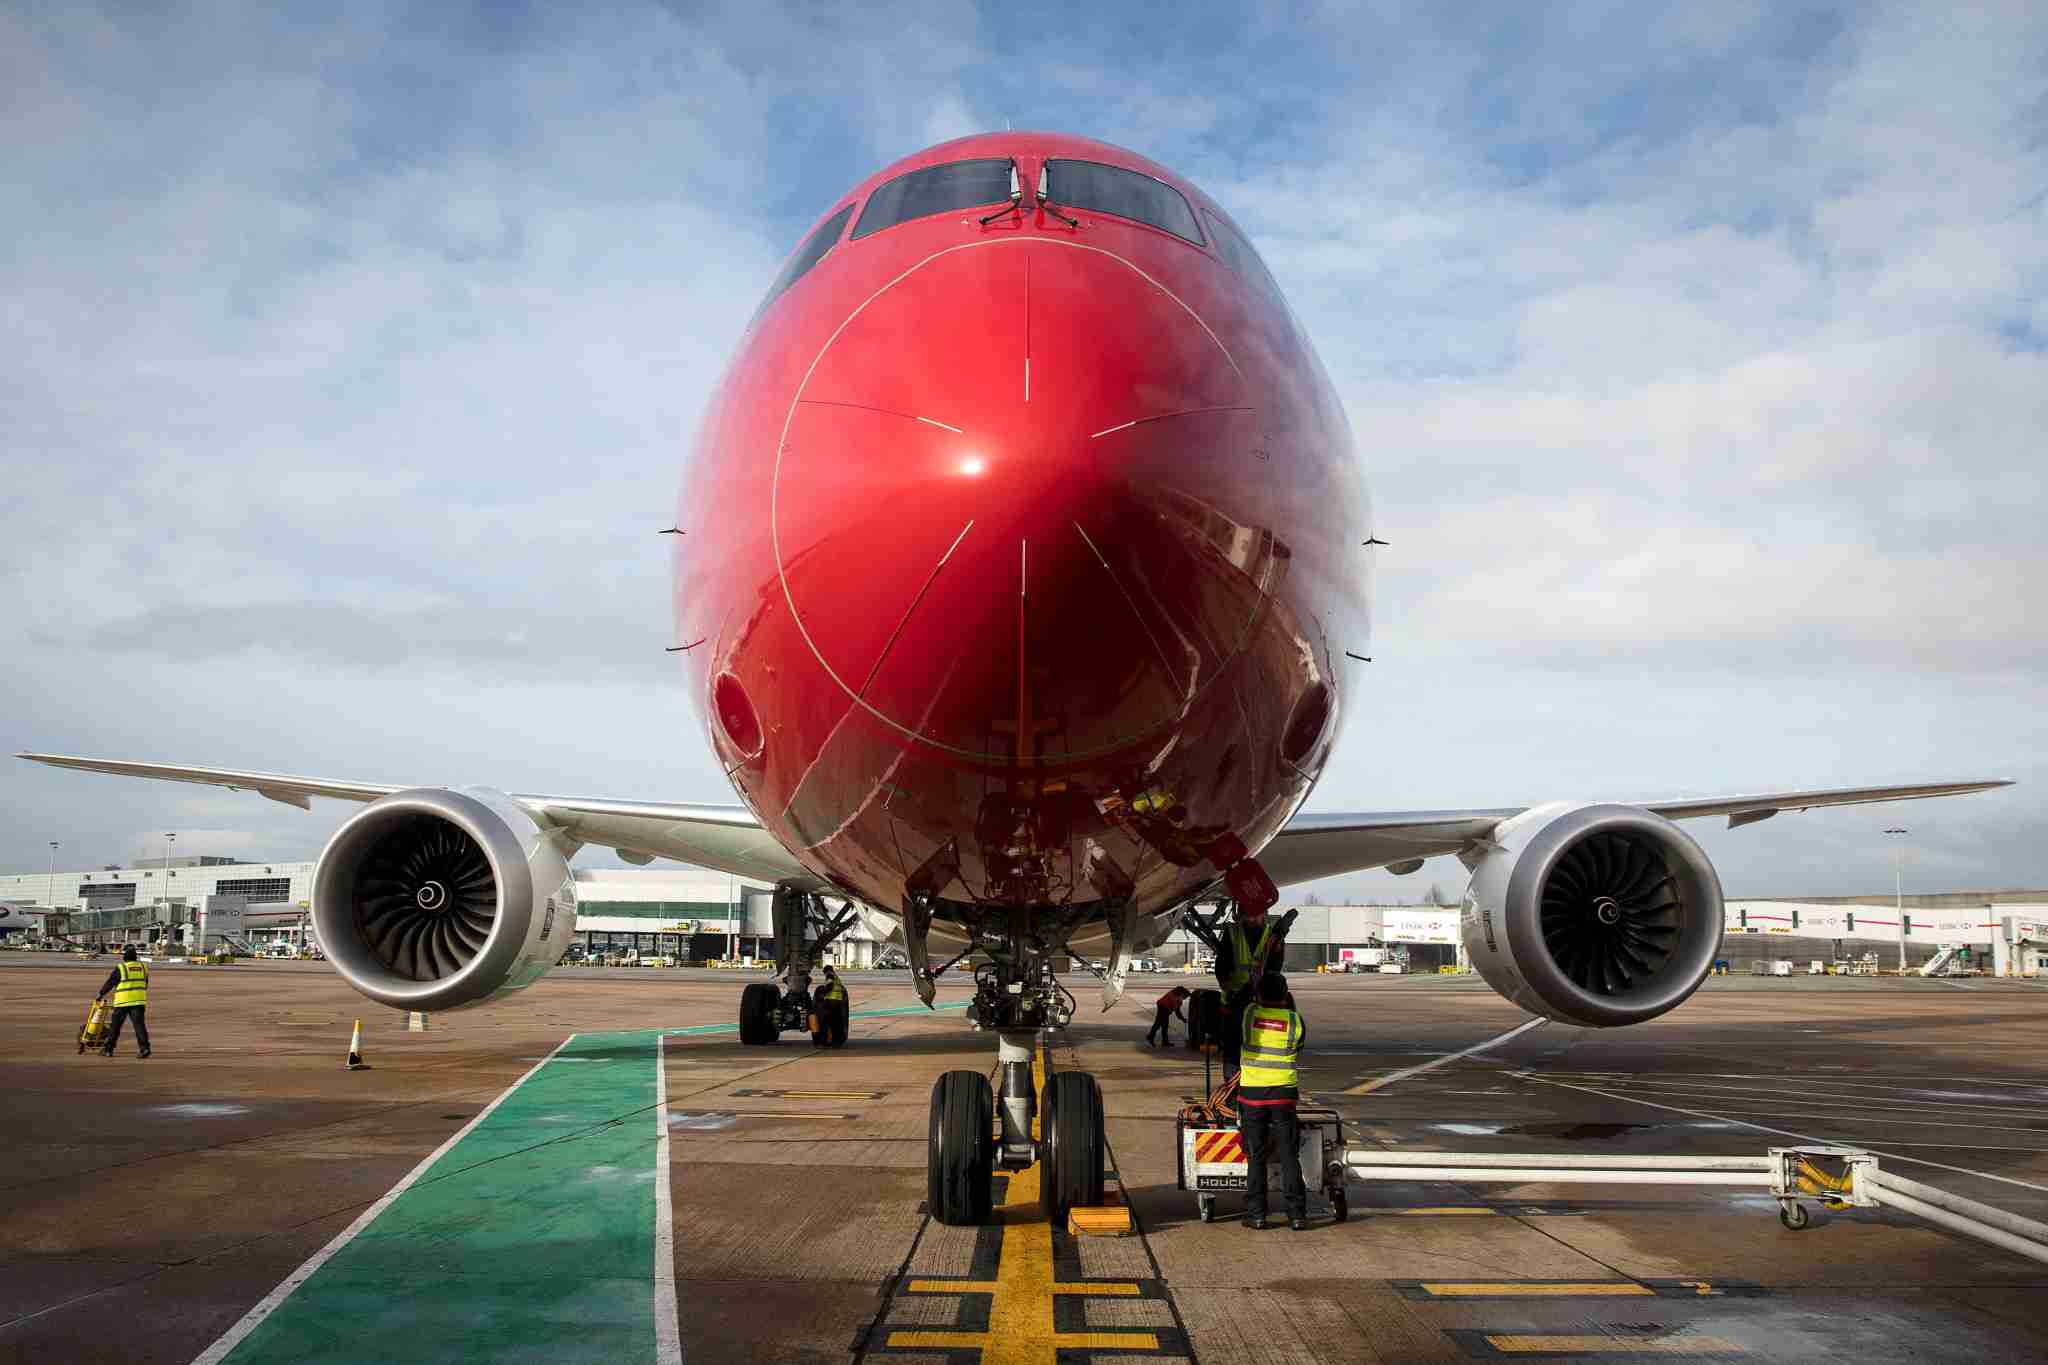 An employee checks on a Norwegian Air Boeing 787 Dreamliner at London Gatwick Airport on Jan. 10, 2017. (Photo by Simon Dawson/Bloomberg via Getty Images)